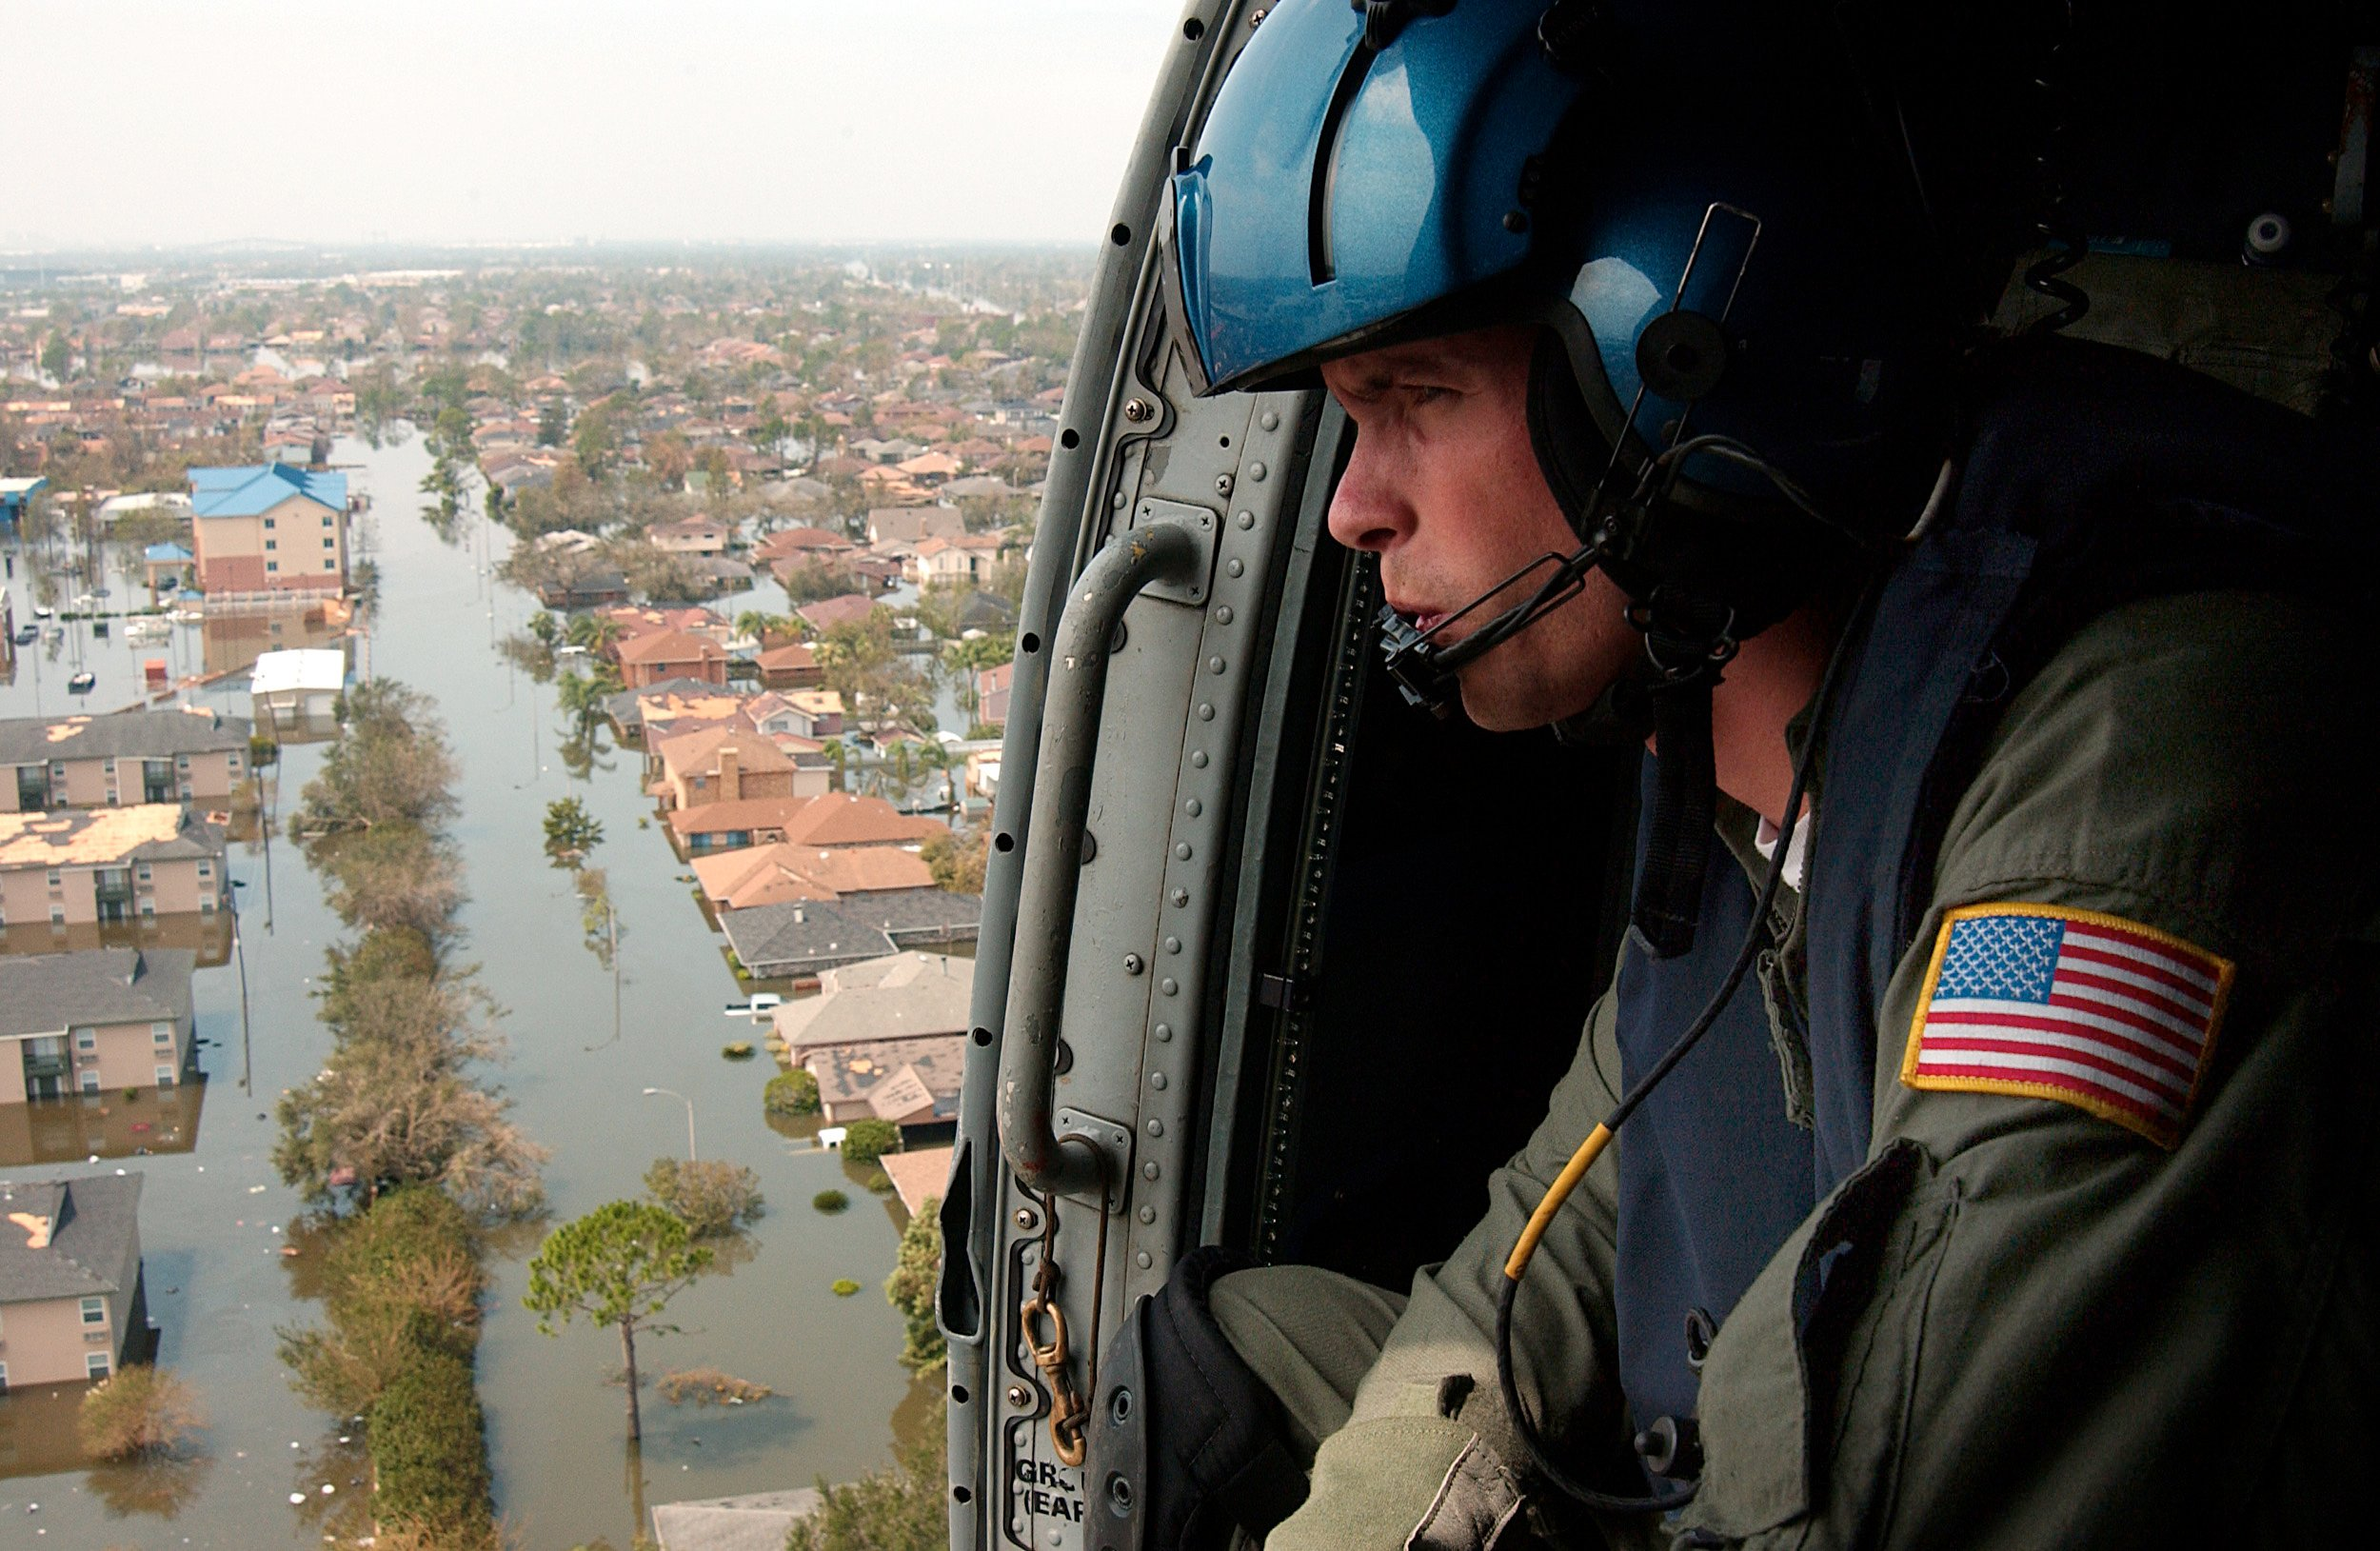 U.S. Coast Guard Petty Officer 2nd Class Shawn Beaty of Long Island, N.Y., looks for survivors in the wake of Hurricane Katrina as he flies in a HH-60J Jayhawk helicopter over New Orleans on Aug. 30, 2015. US Coast Guard Photo